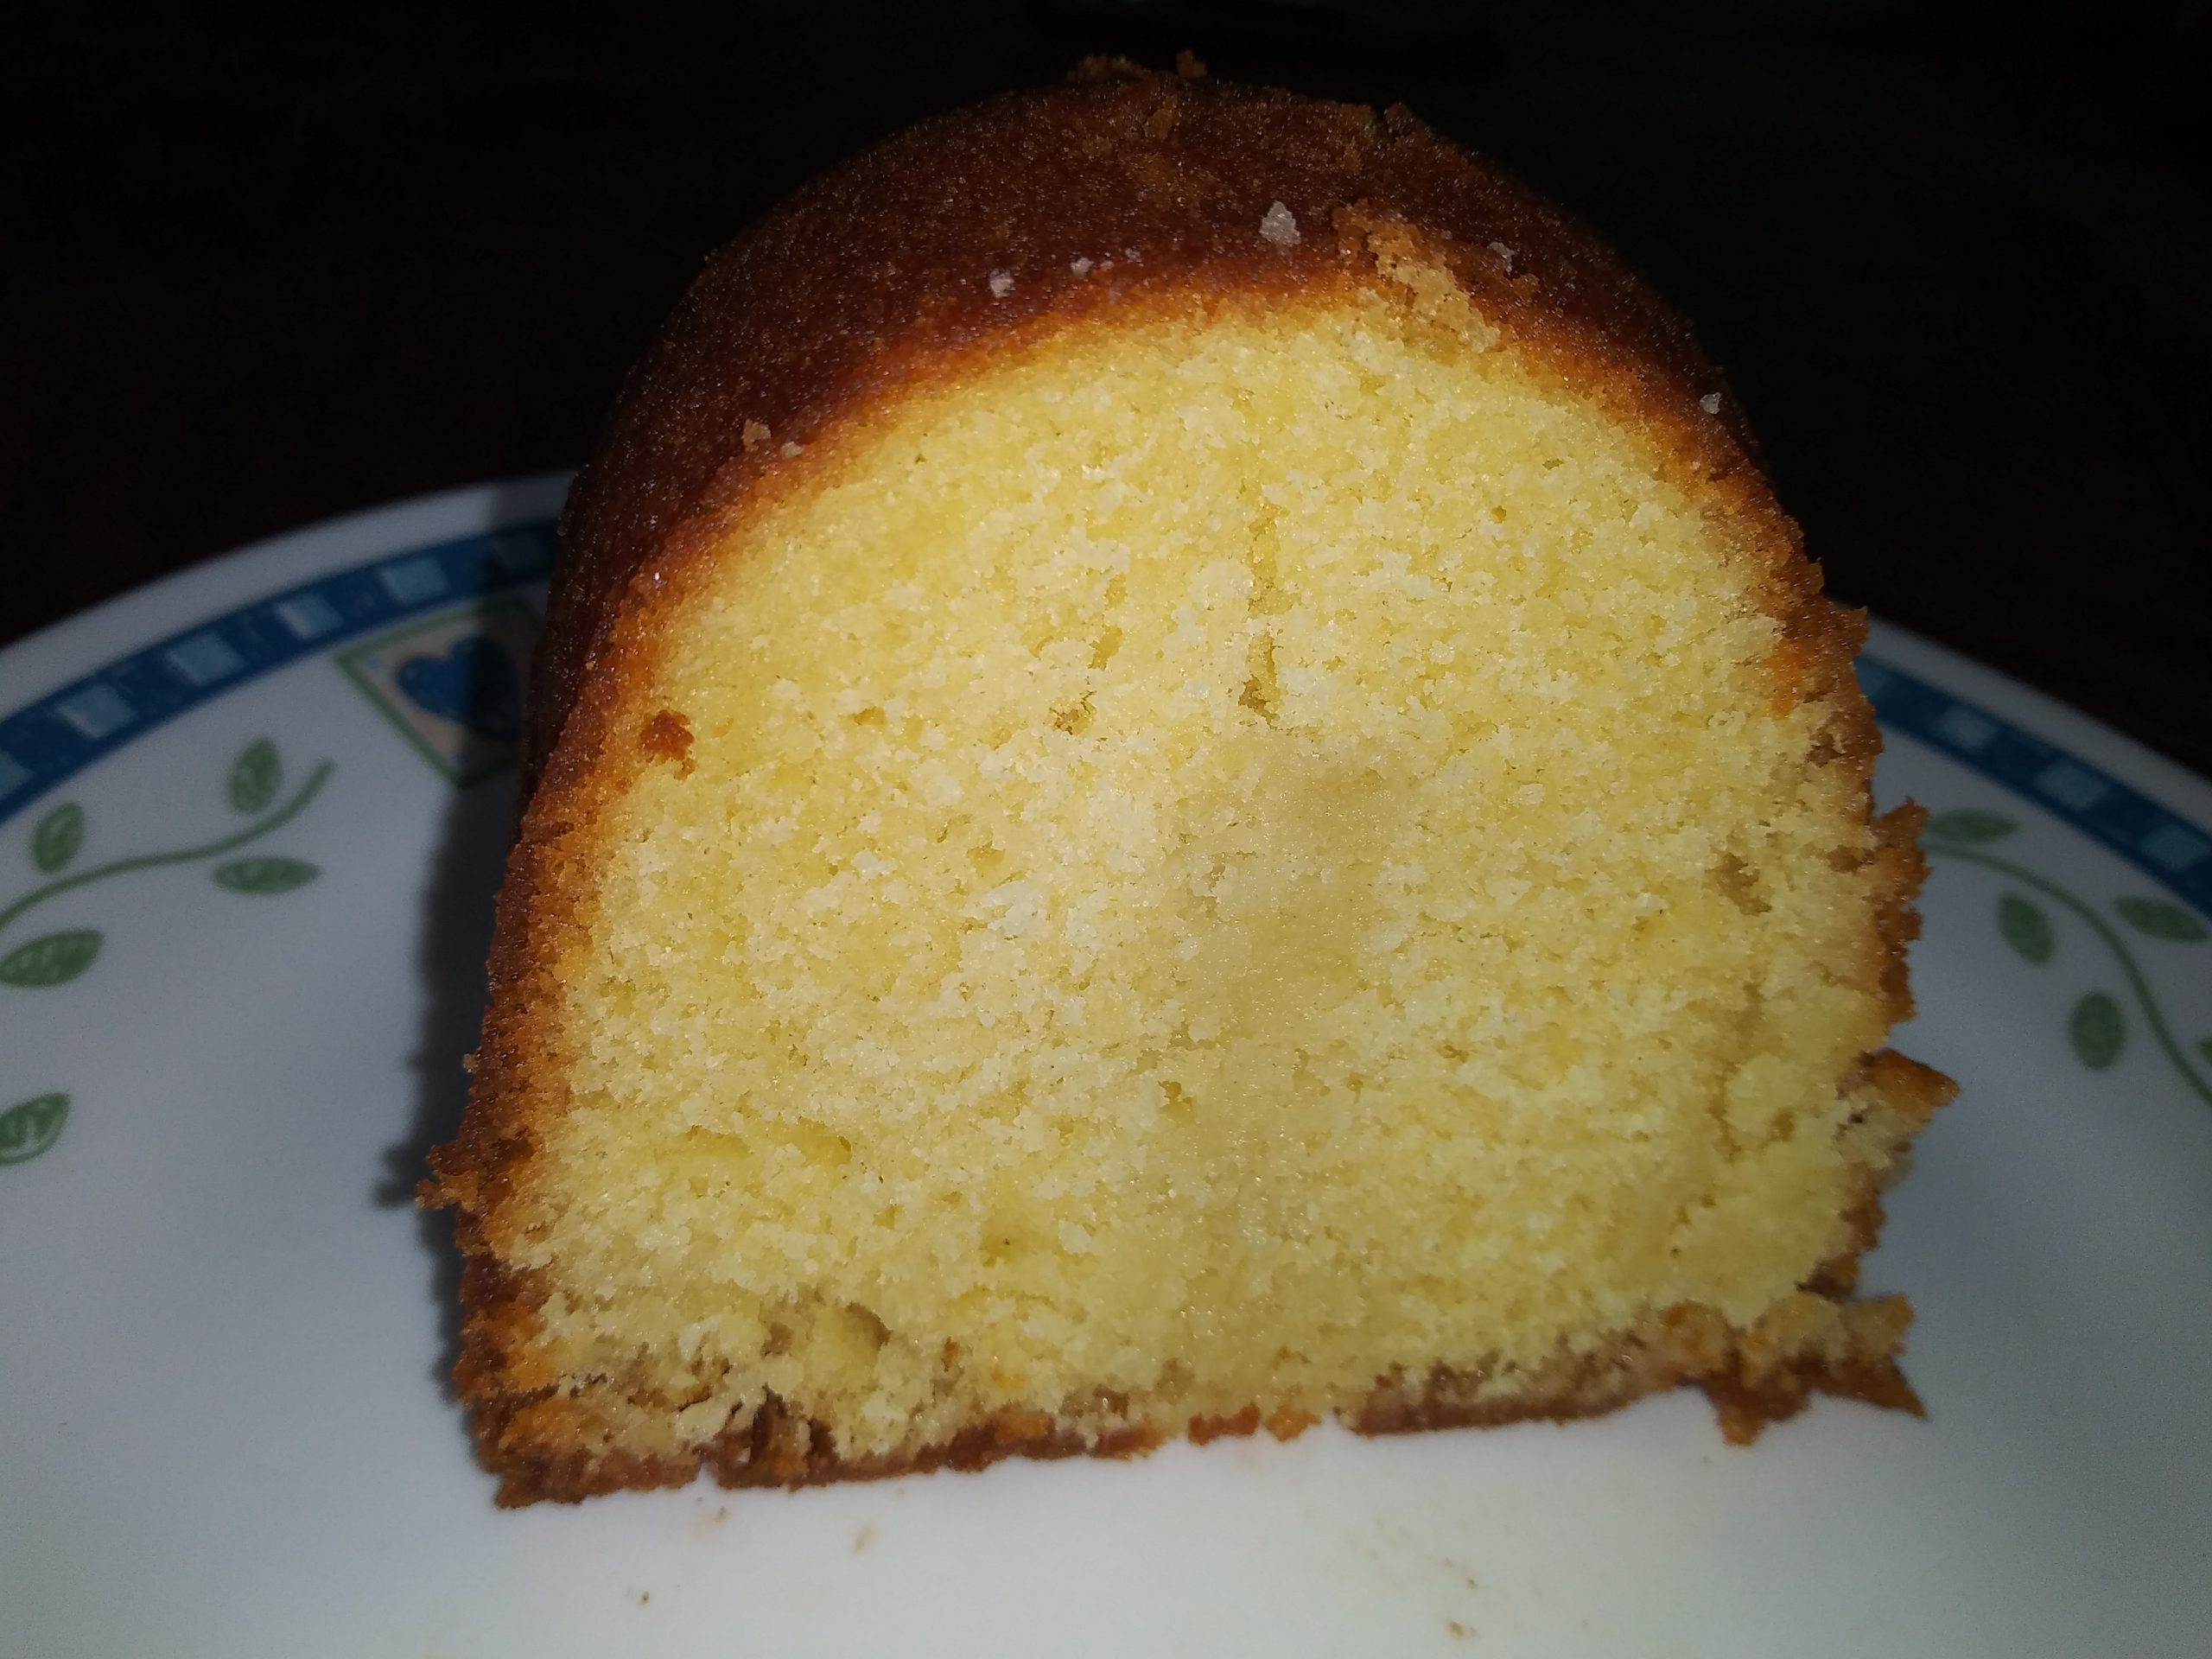 Rum Cake Recipe From Scratch – No Cake Mixes!